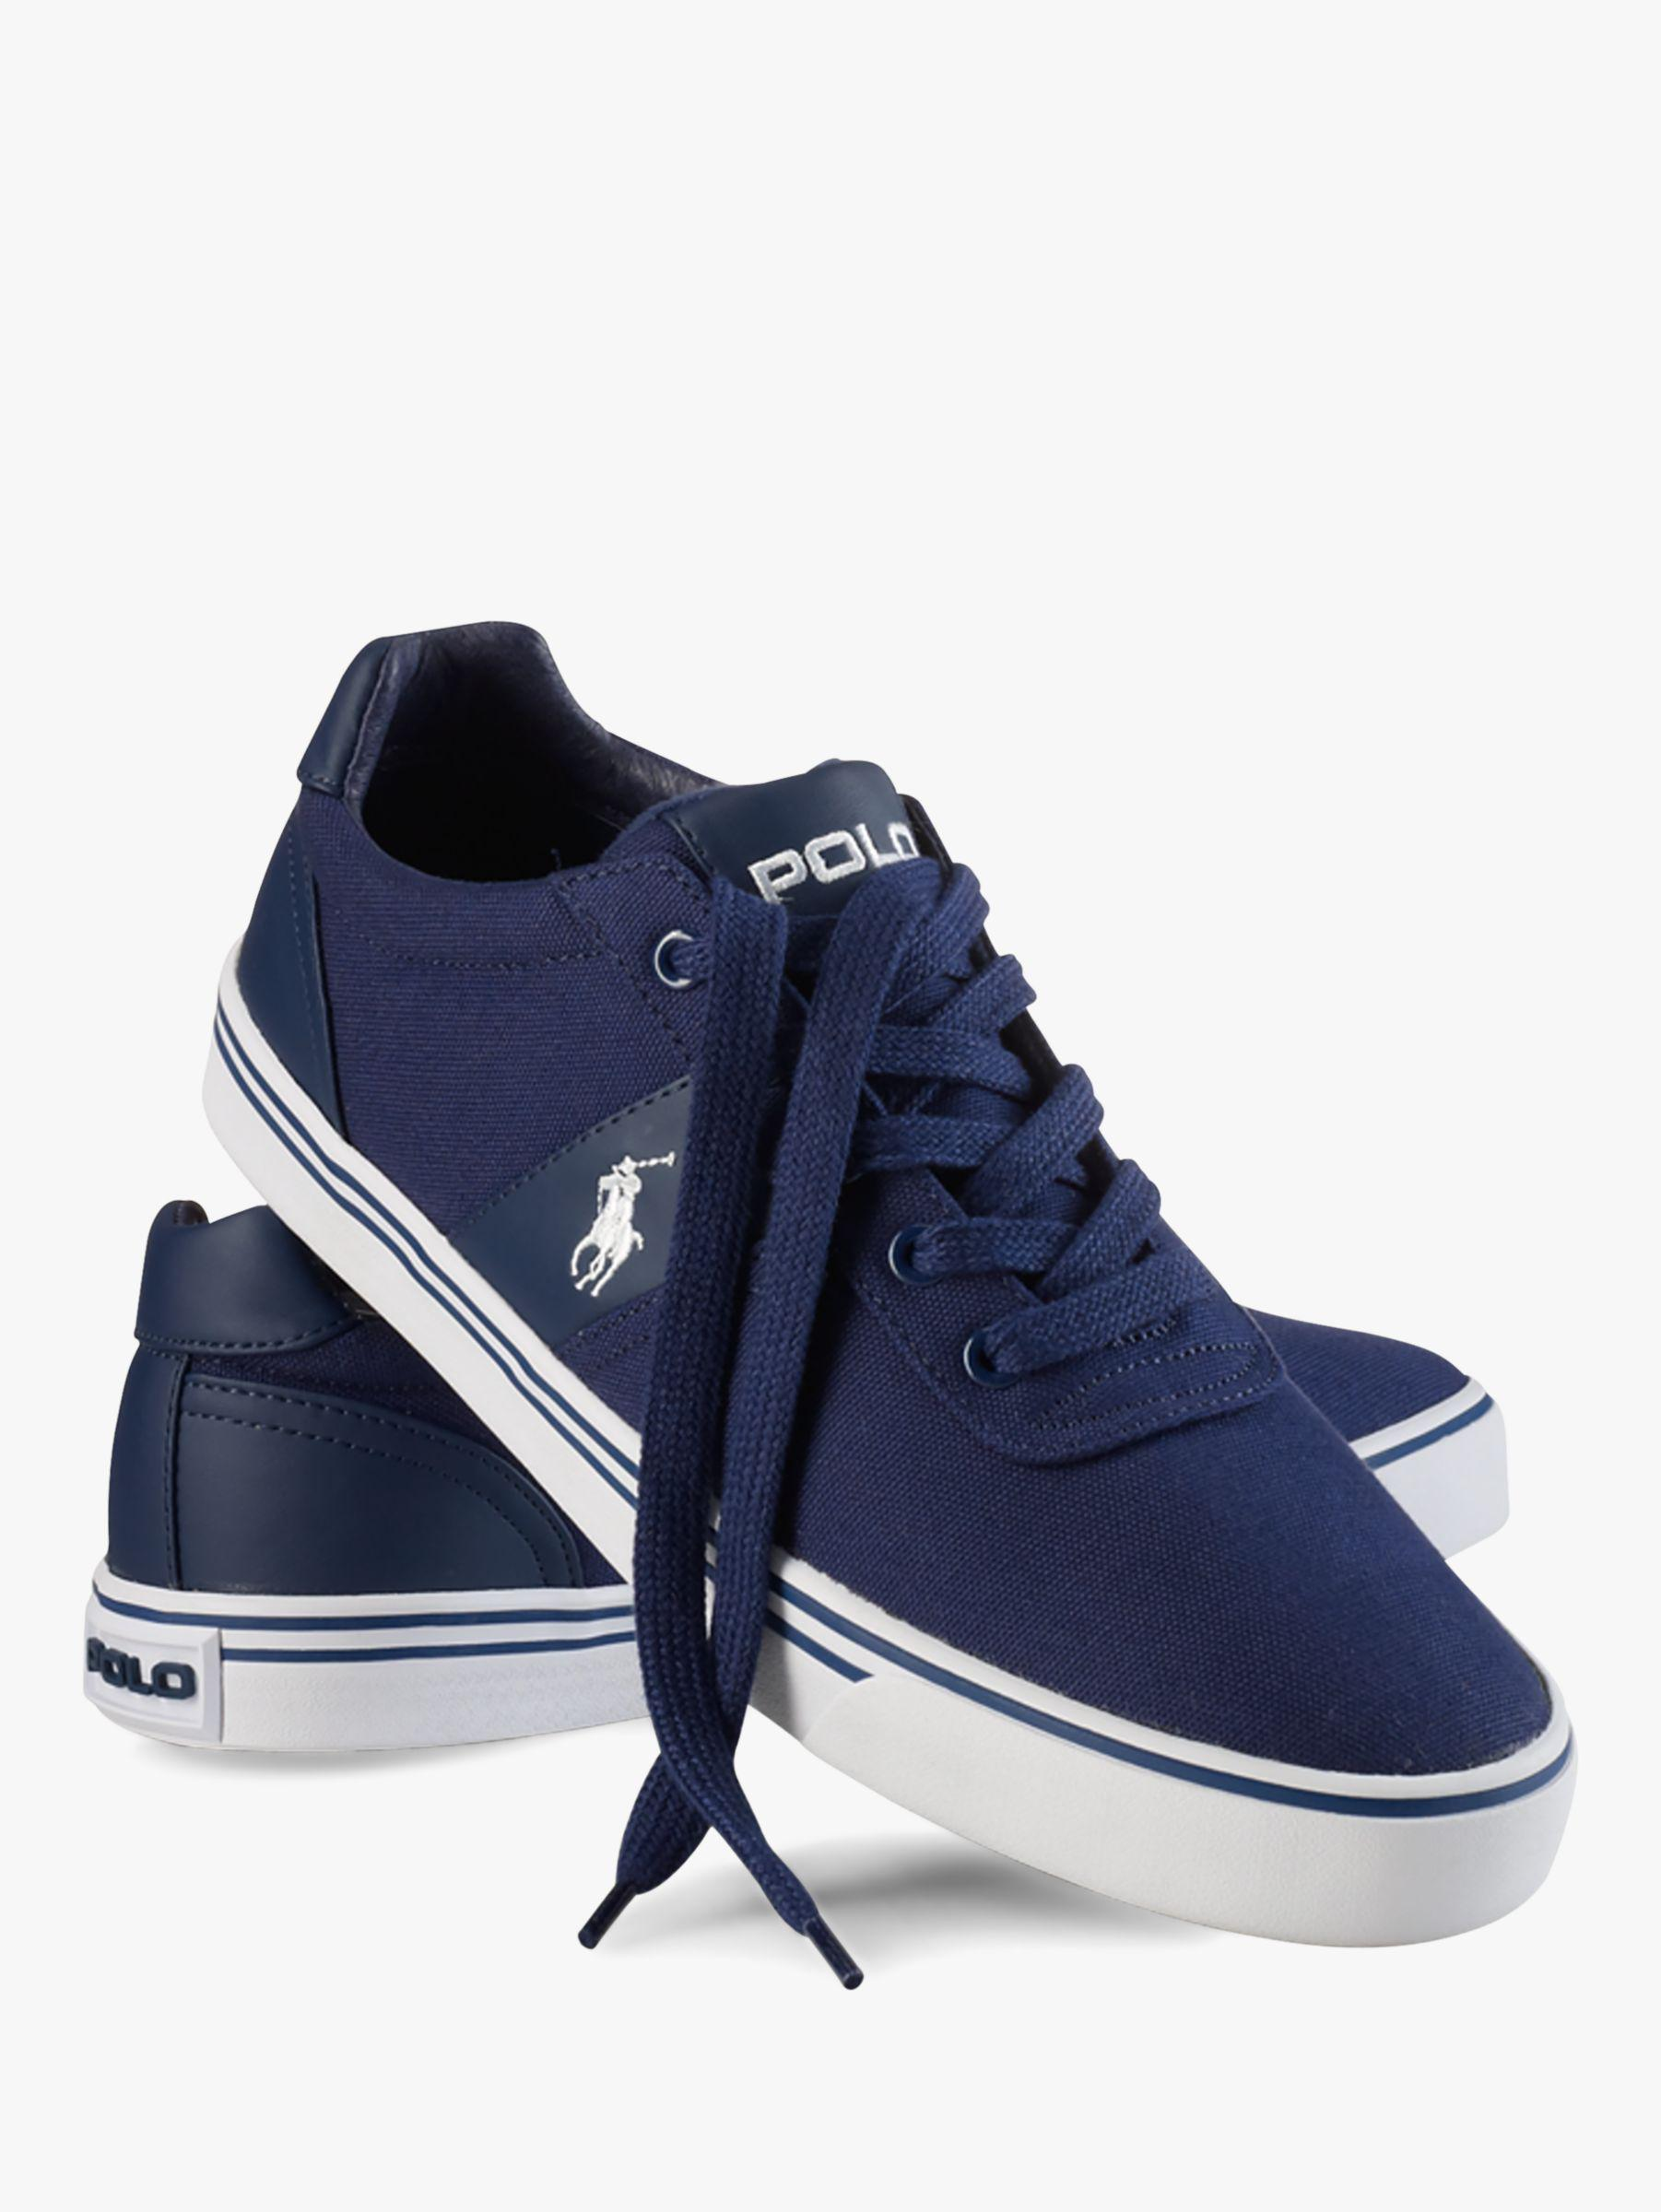 ee51c2ef4d5a Ralph Lauren Polo Hanford Canvas Trainers in Blue for Men - Save 24 ...